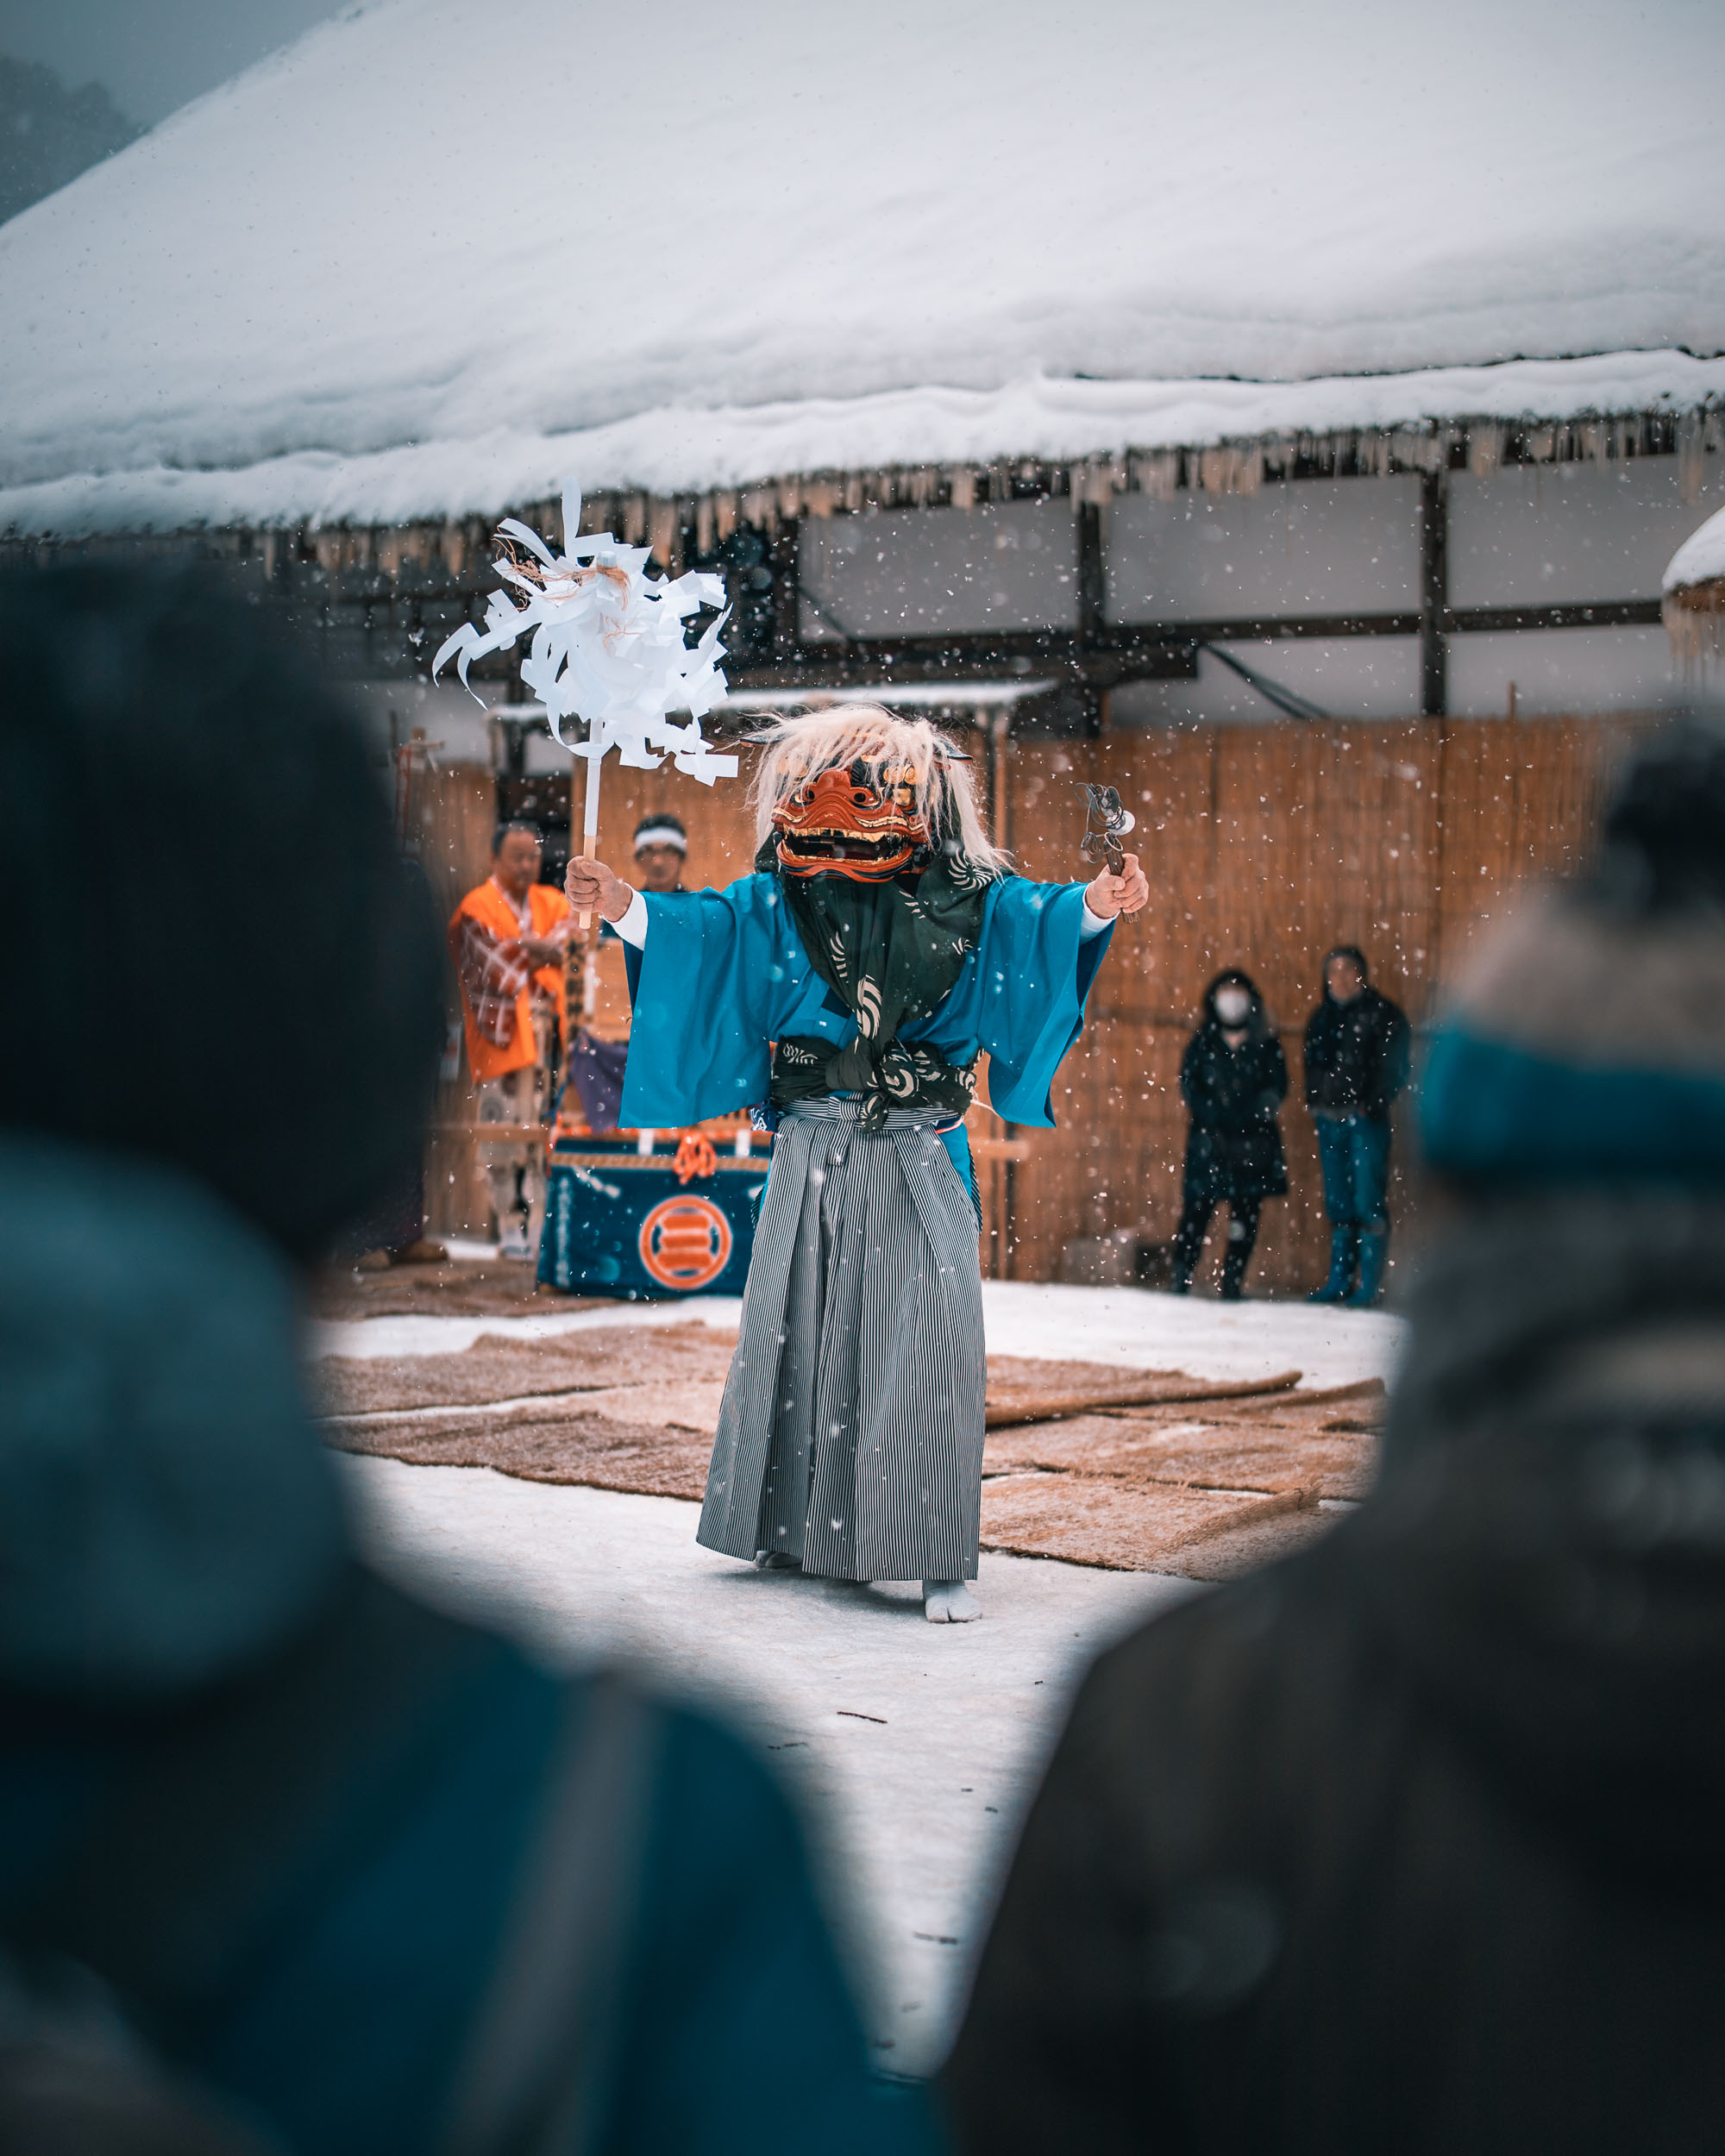 Local performance at Ouchi-juku Snow Festival